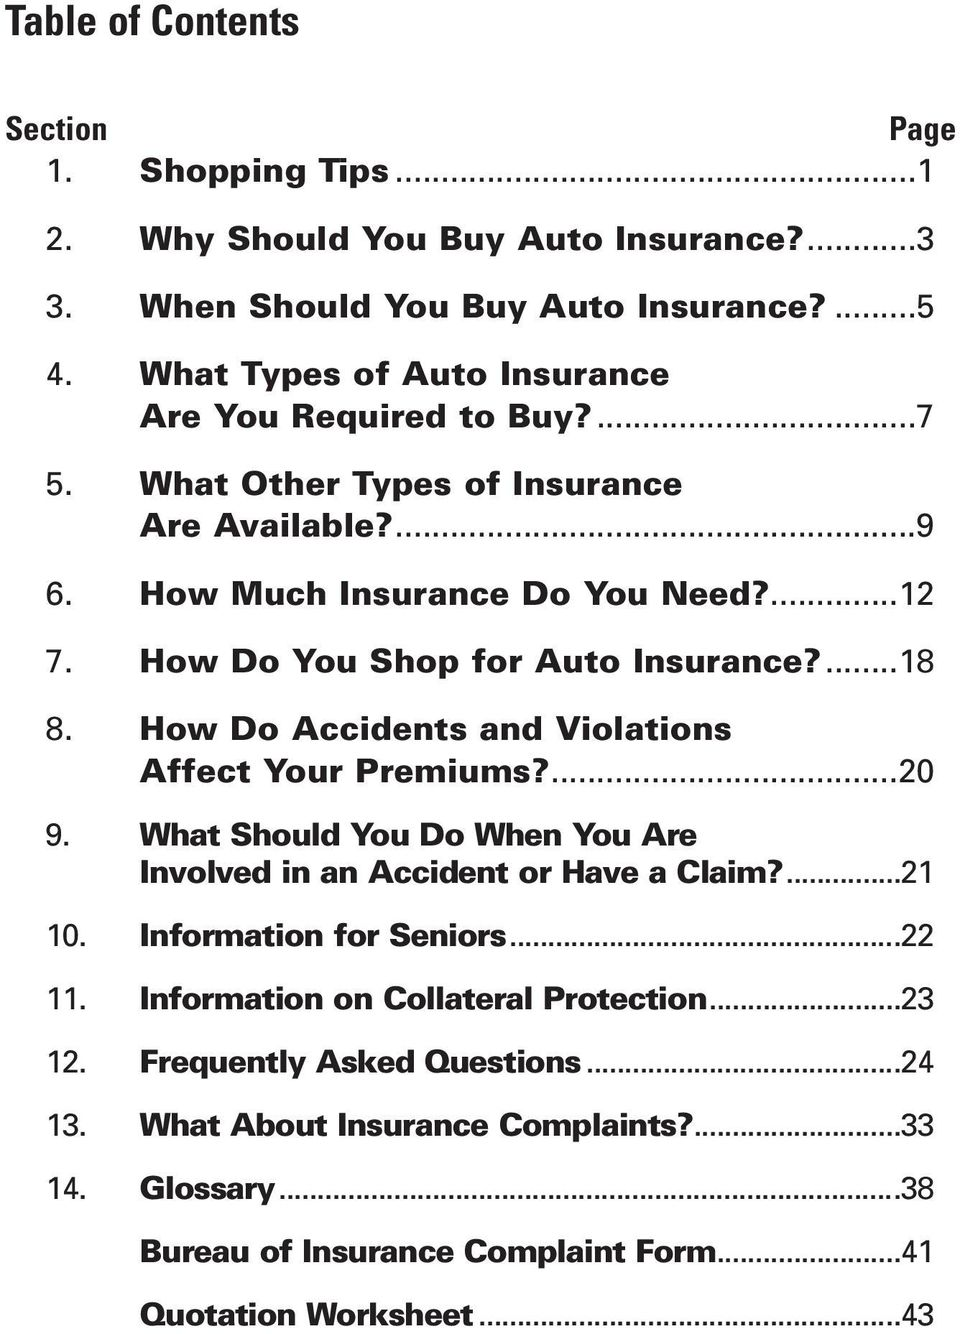 How Do You Shop for Auto Insurance?...18 8. How Do Accidents and Violations Affect Your Premiums?...20 9. What Should You Do When You Are Involved in an Accident or Have a Claim?